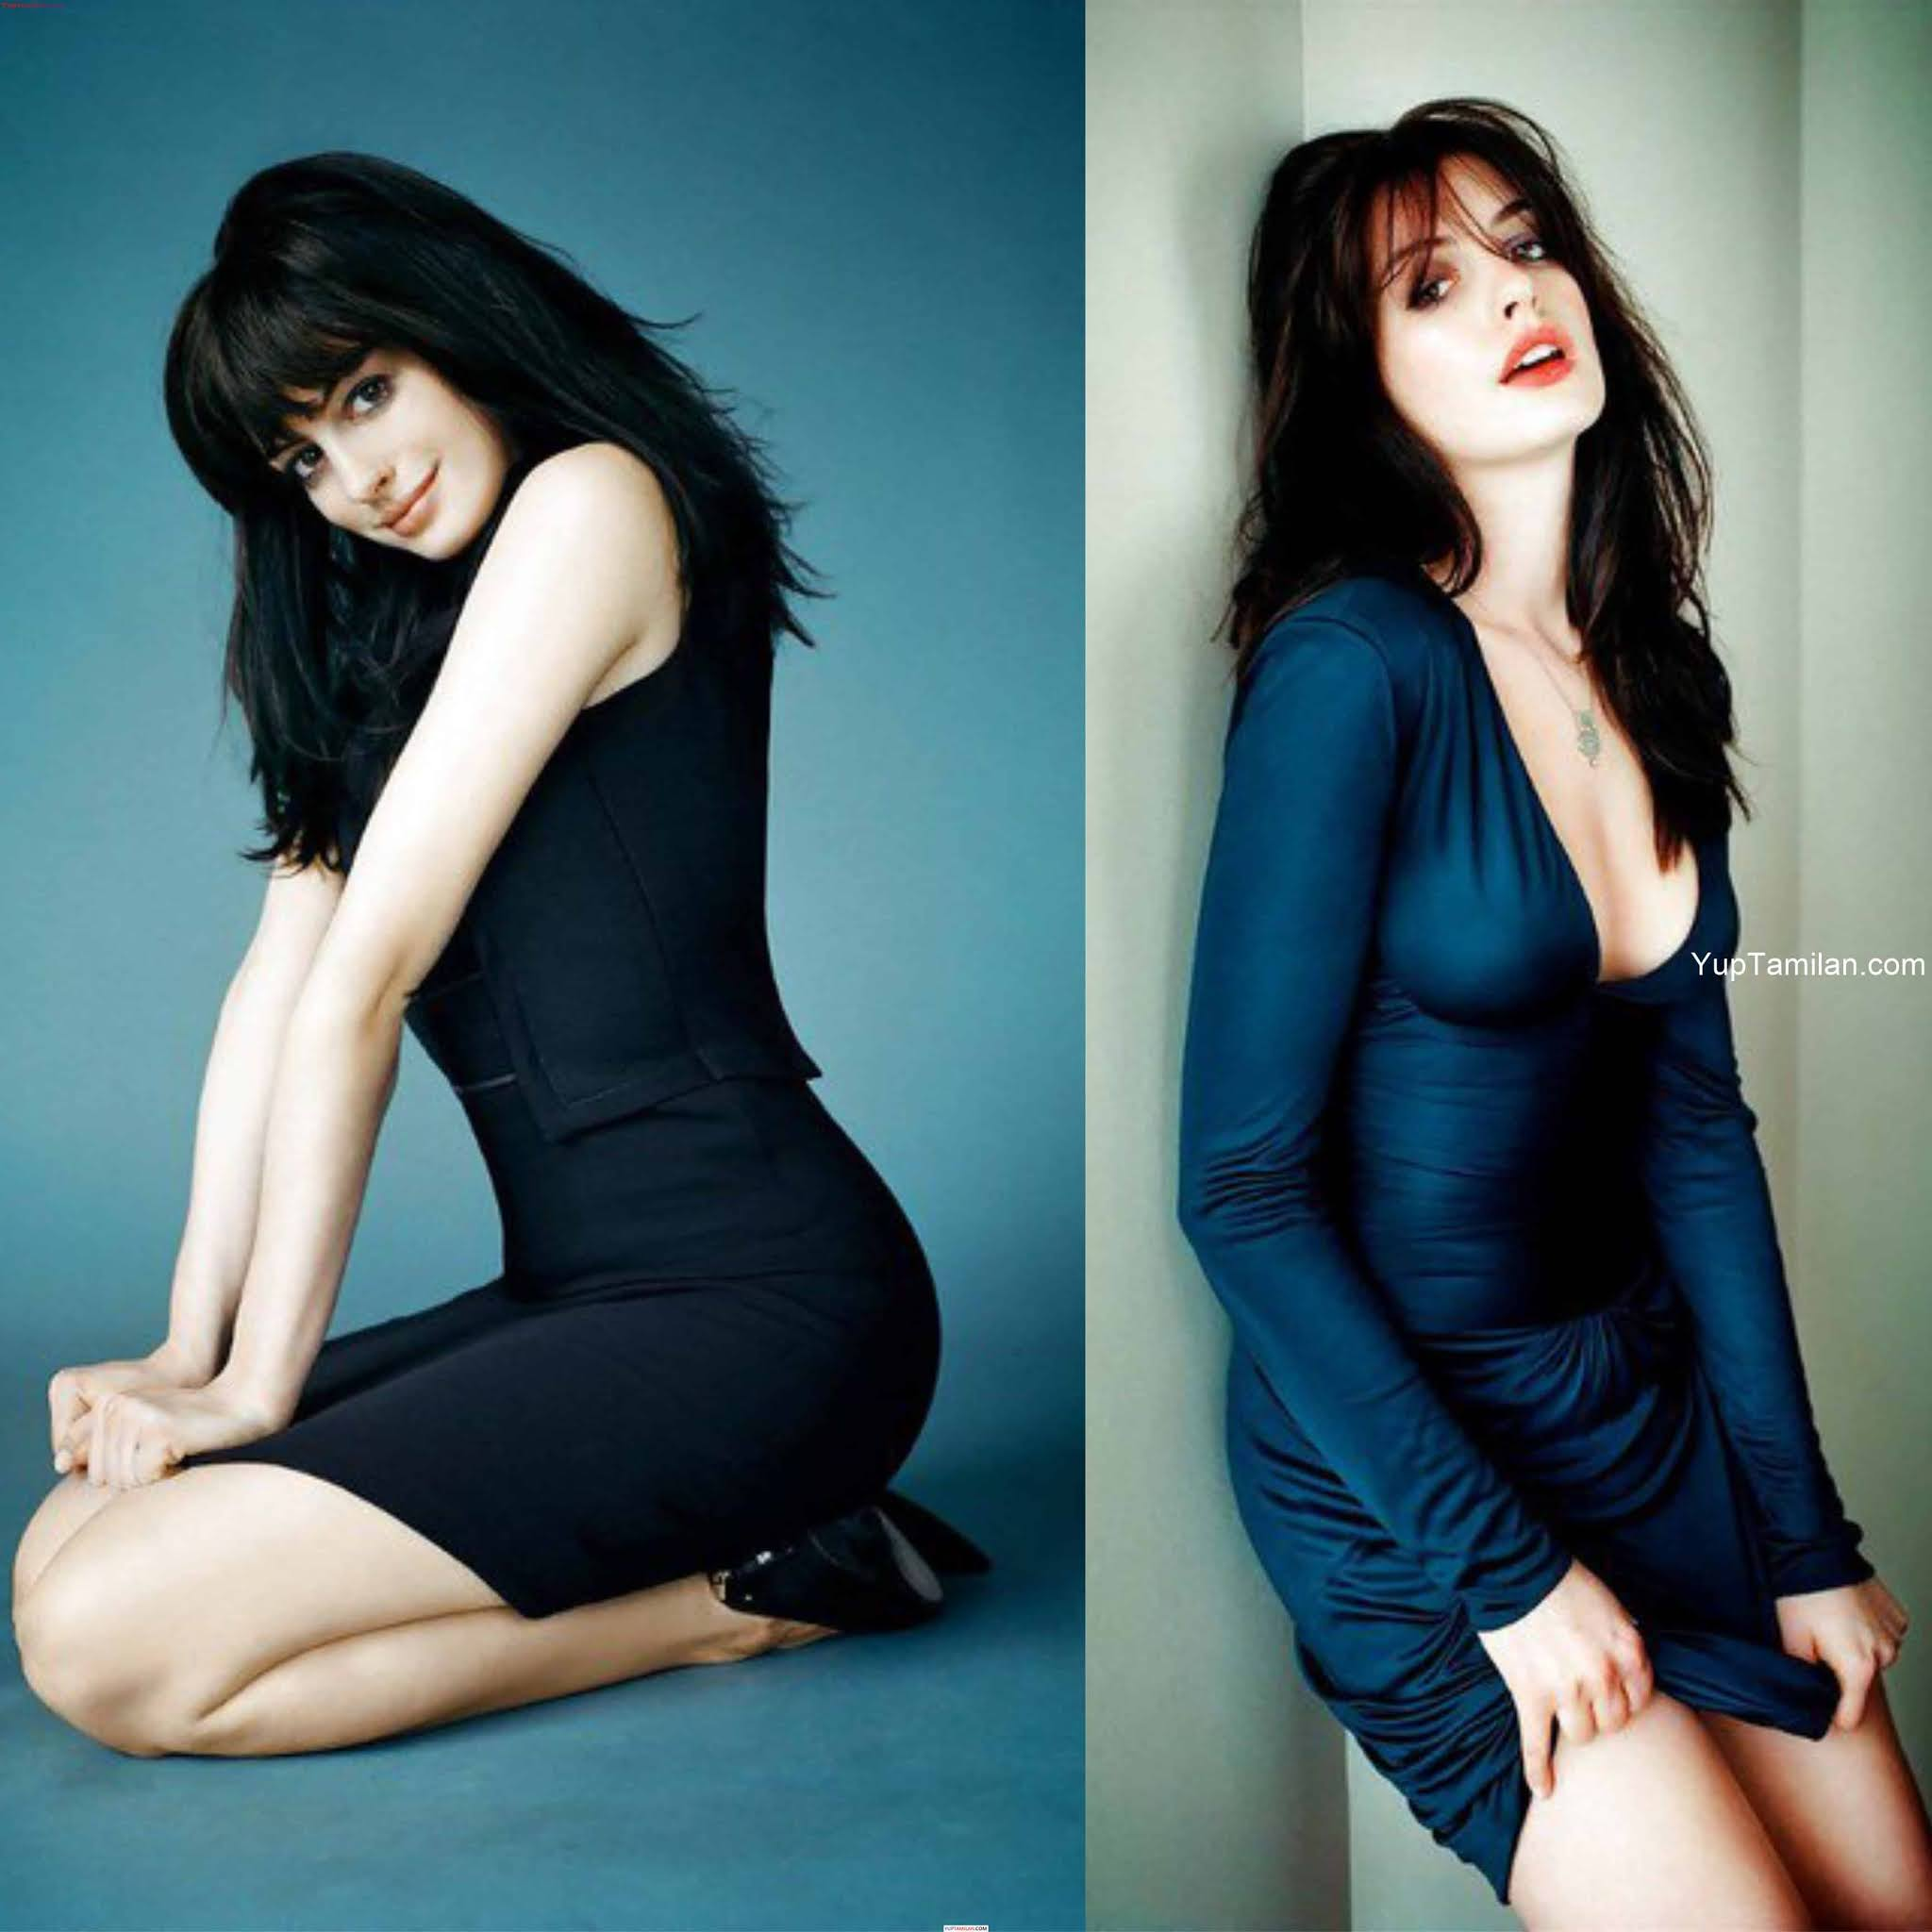 Anne Hathaway's Hot and Sexy Cleavage Photos